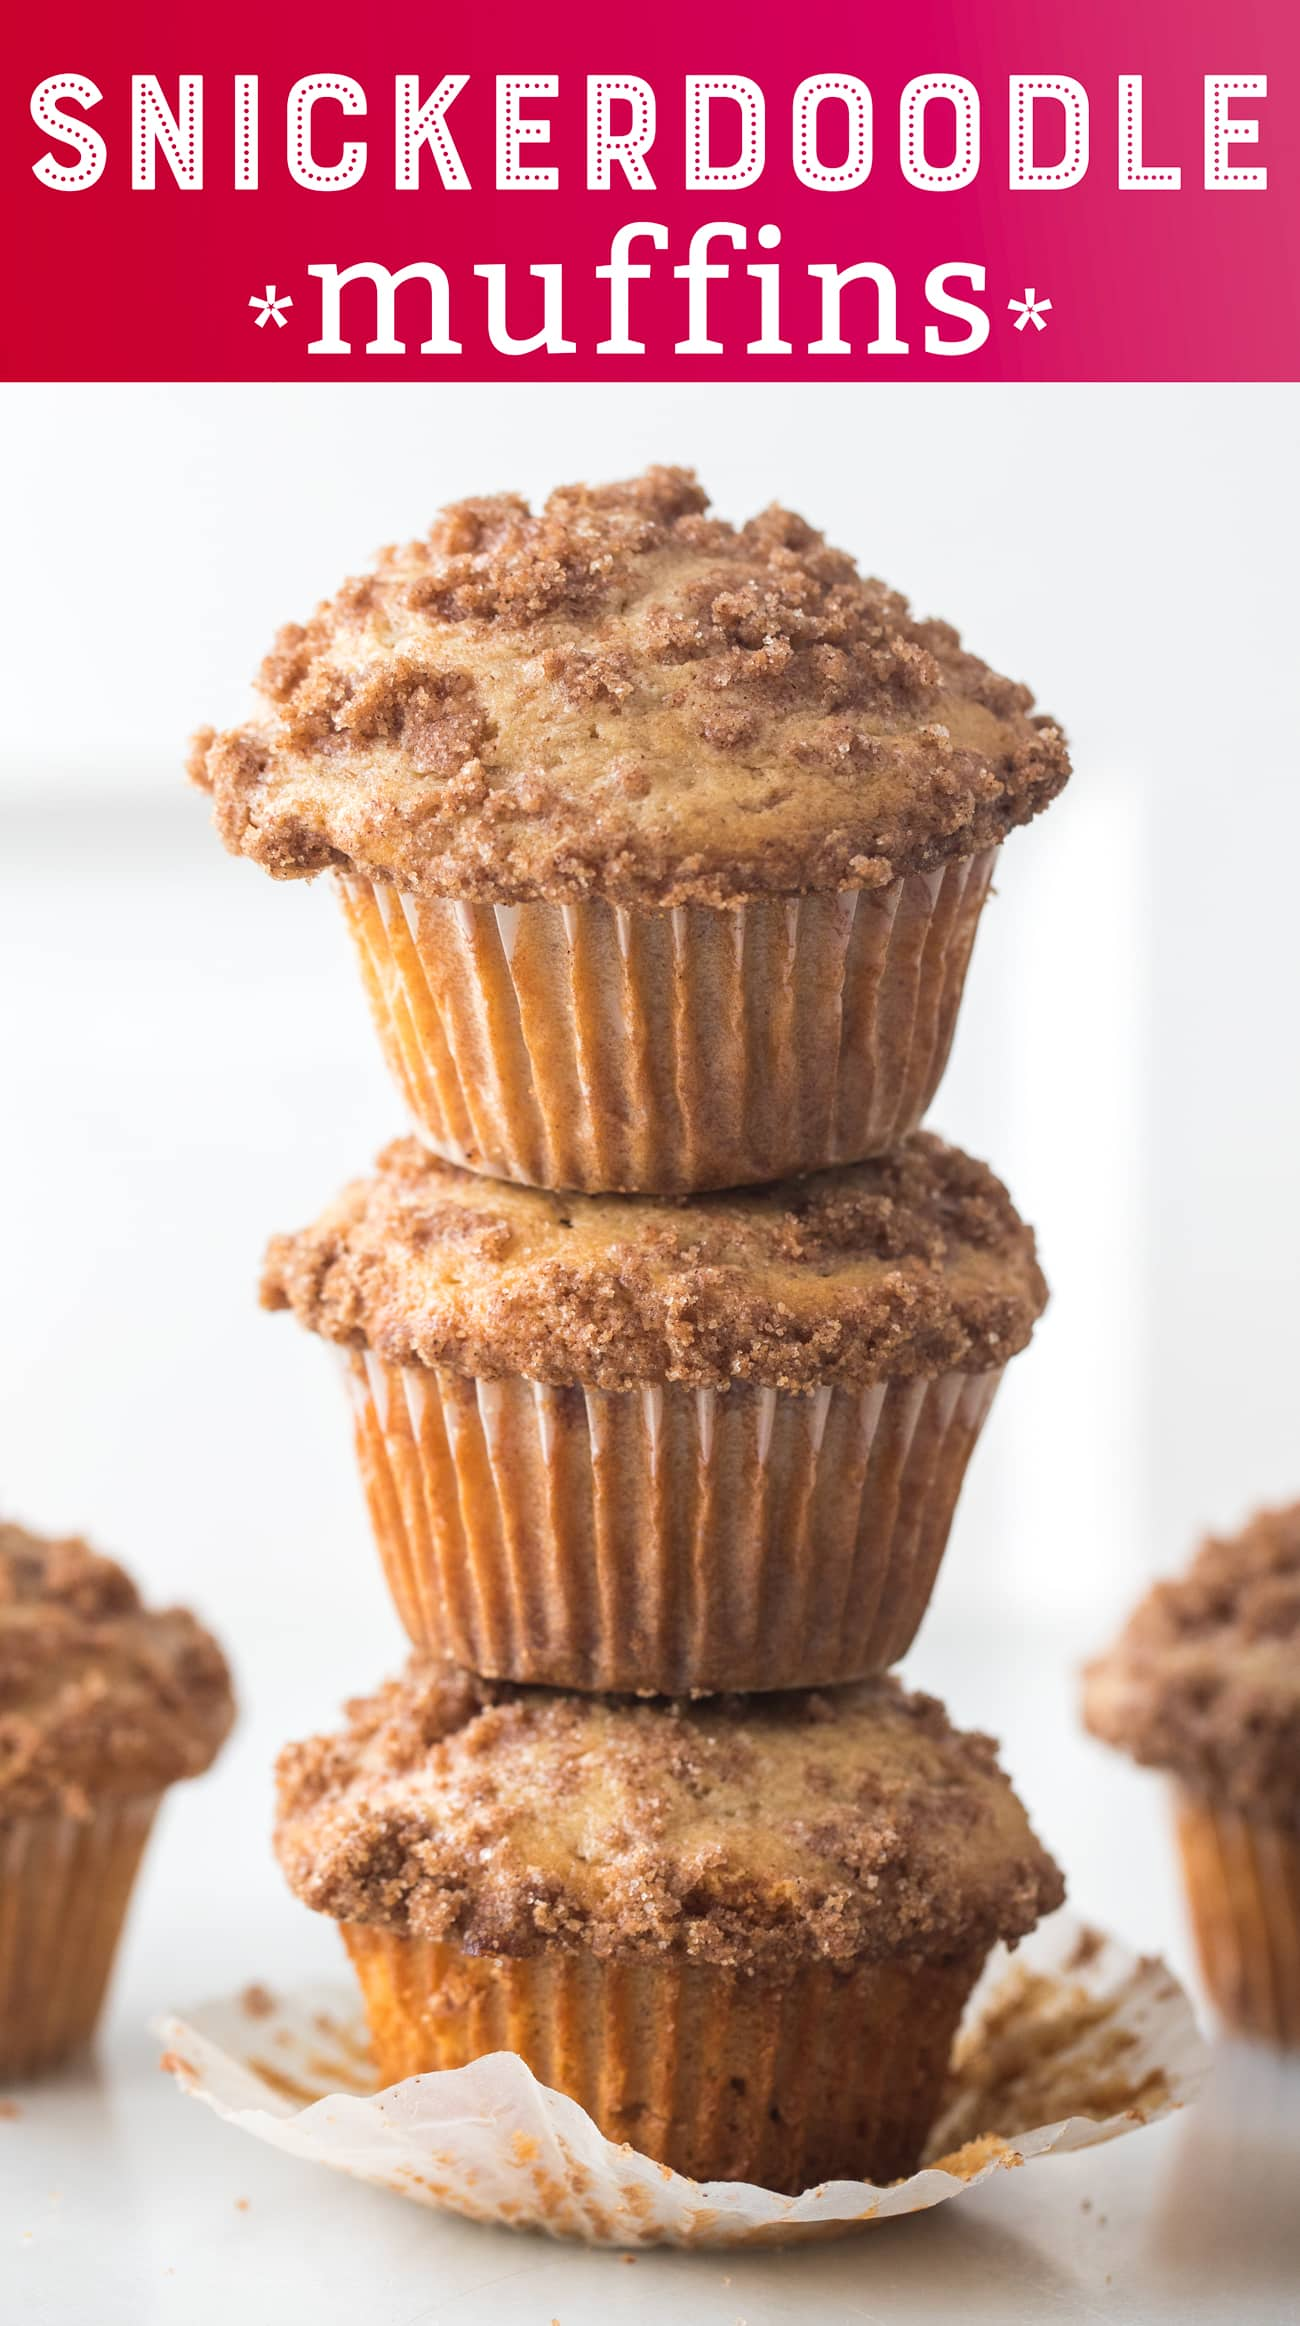 Snickerdoodle Muffins are moist, delicious, and perfect for the holiday season.